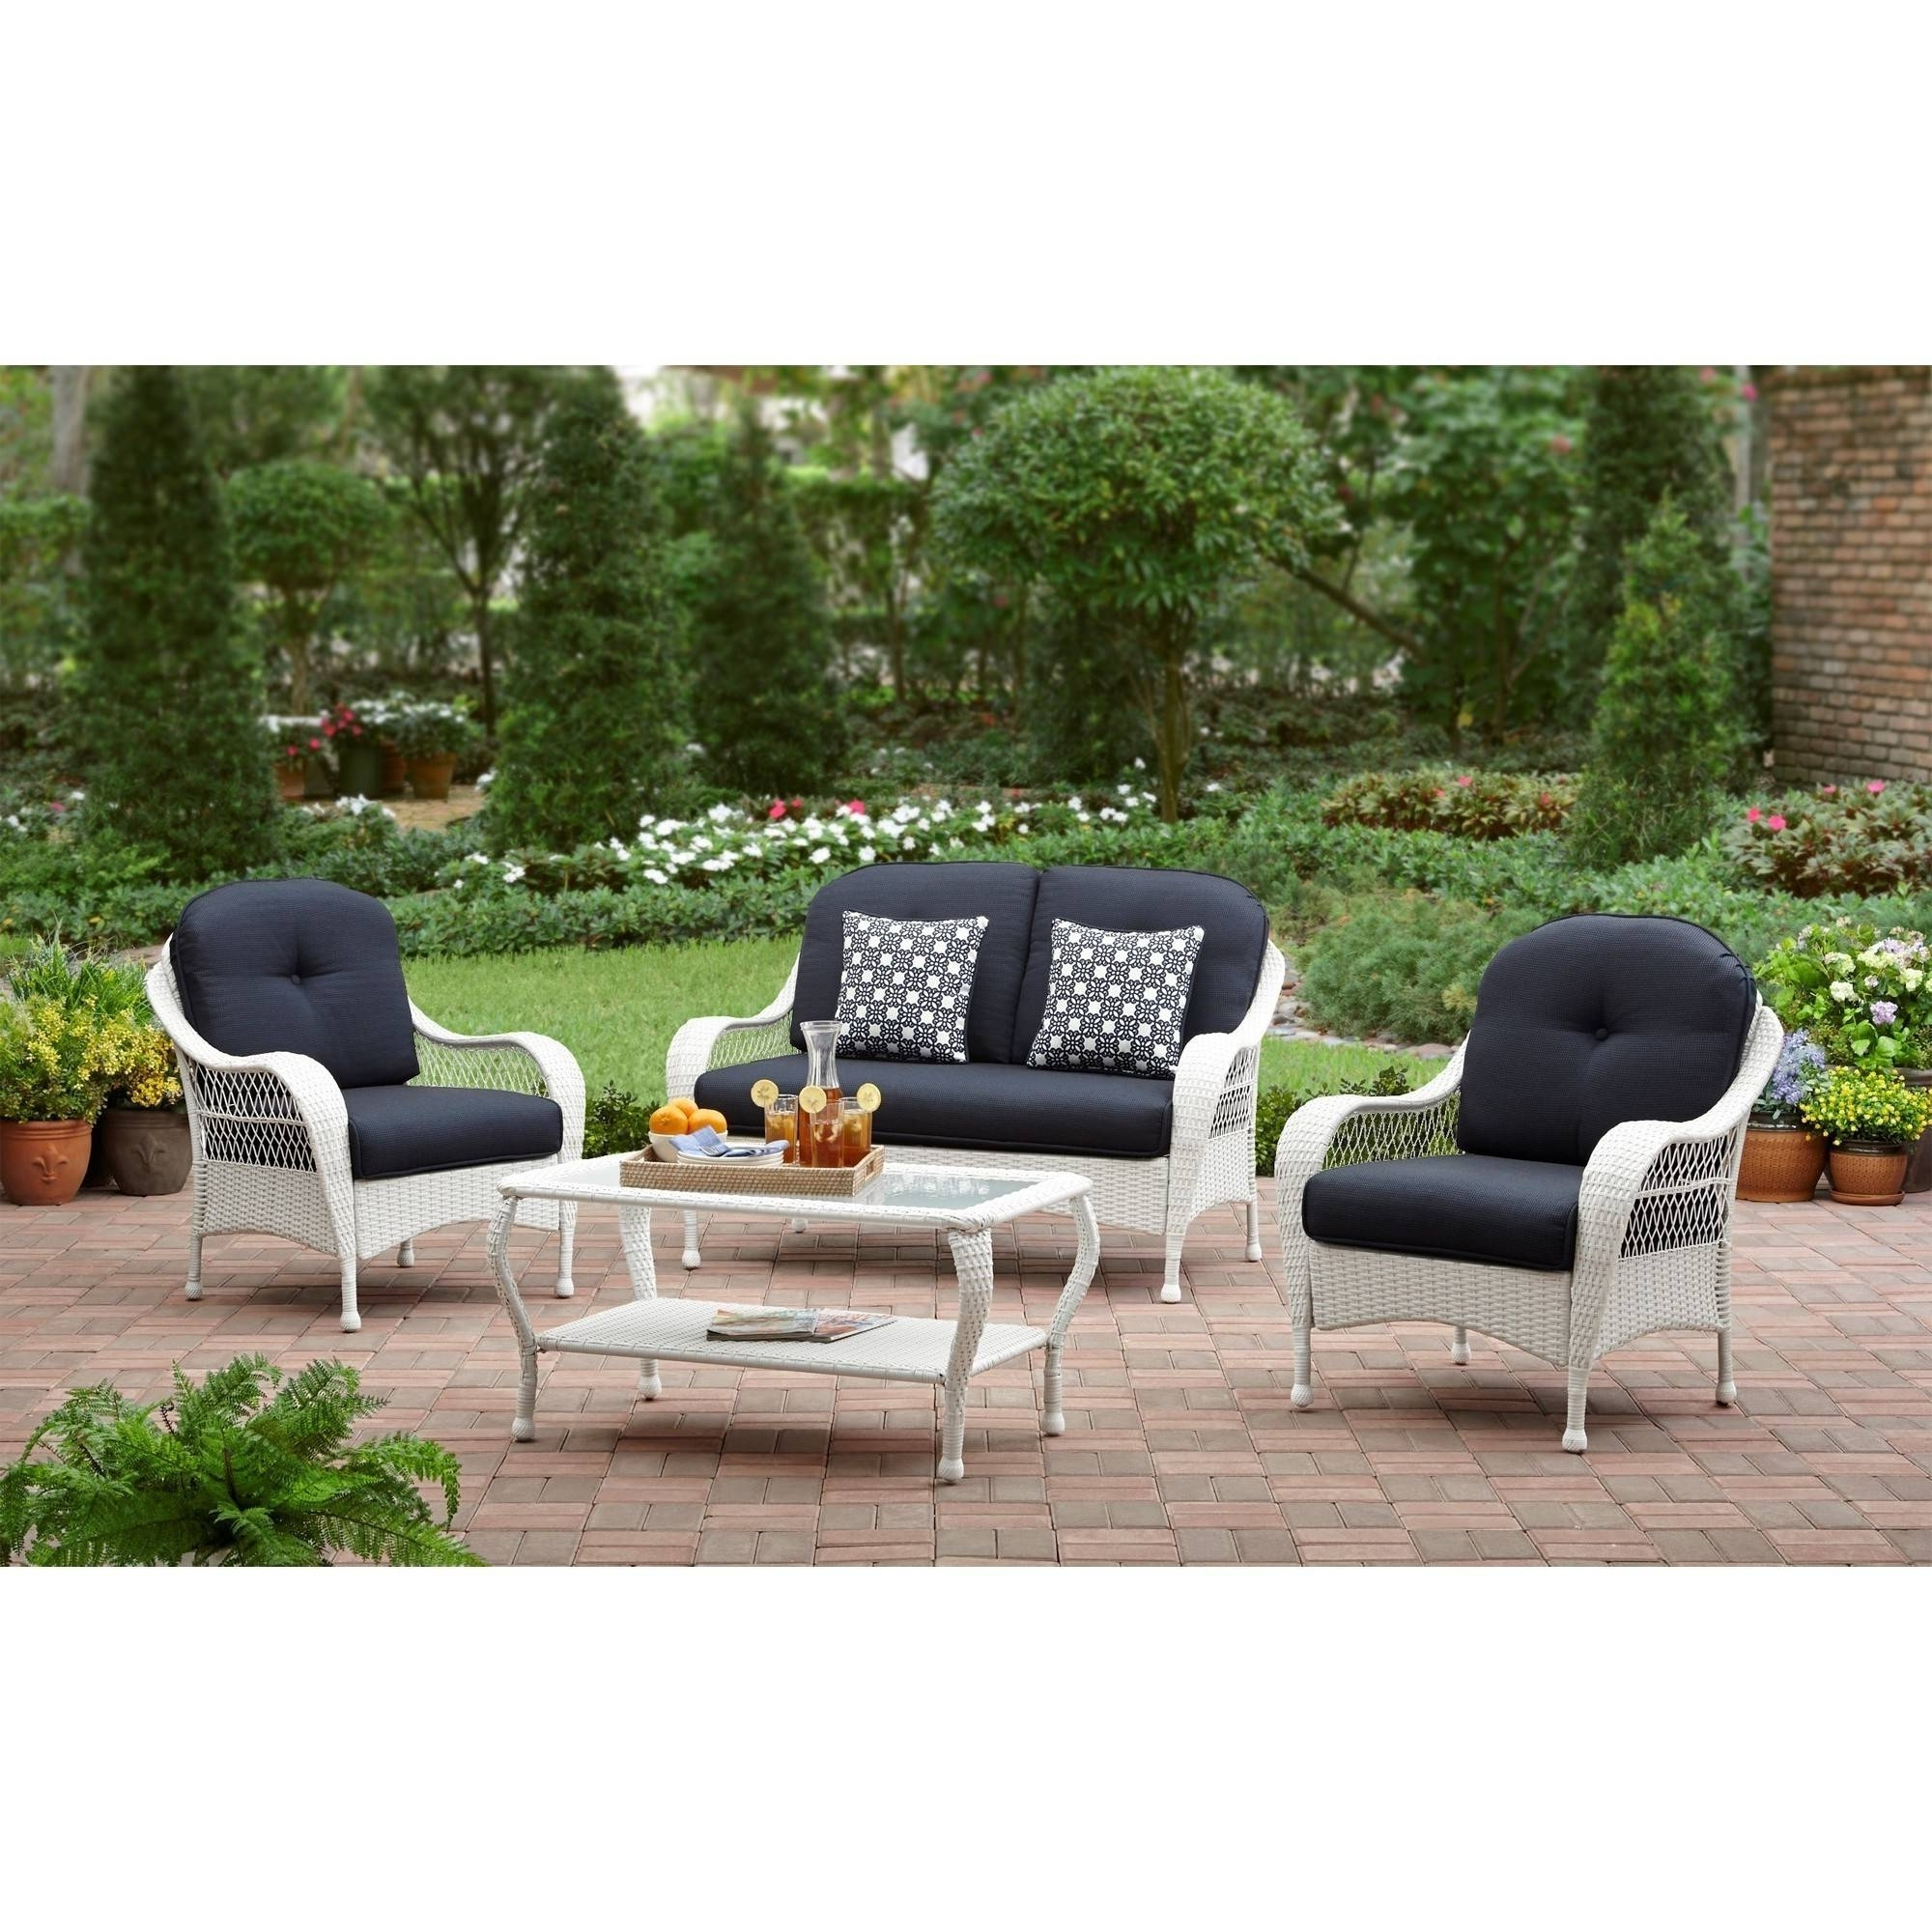 Better Homes And Gardens Azalea Ridge Outdoor Patio Conversation Set Pertaining To Trendy Patio Conversation Sets At Walmart (View 1 of 15)